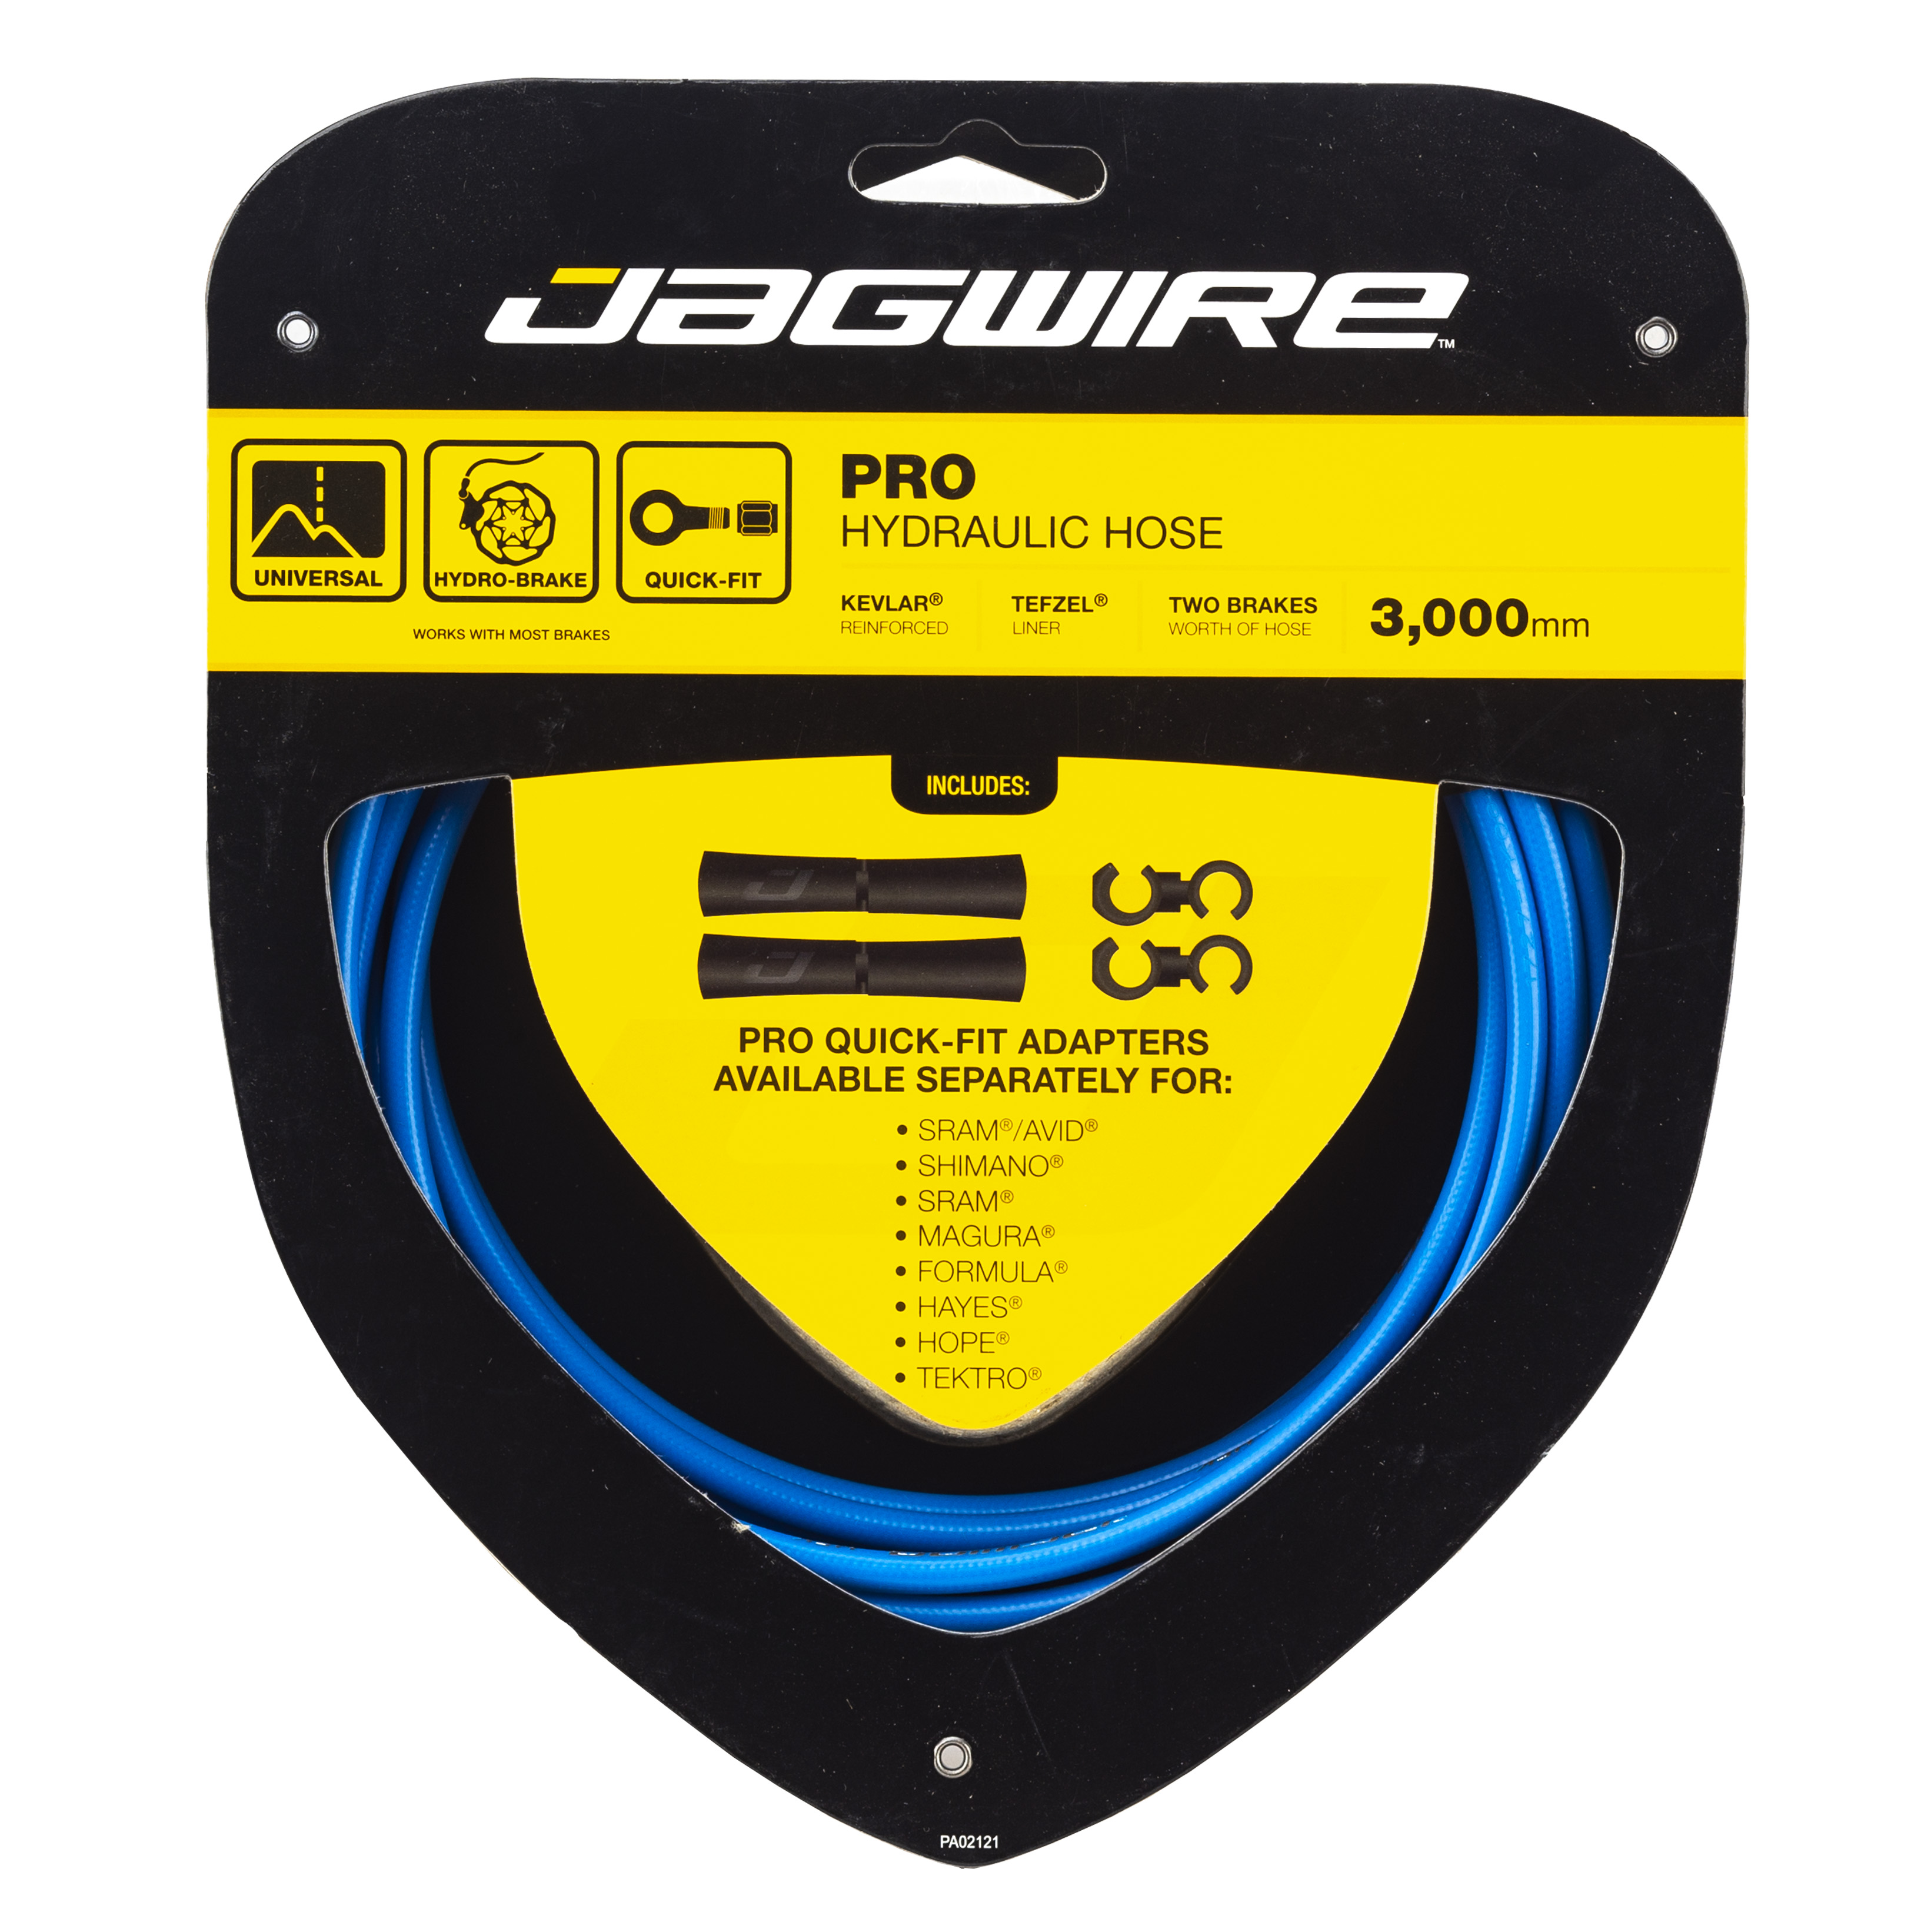 Jagwire Mountain Pro Disc Brake Hydraulic Hose Quick-Fit Adaptor for Formula